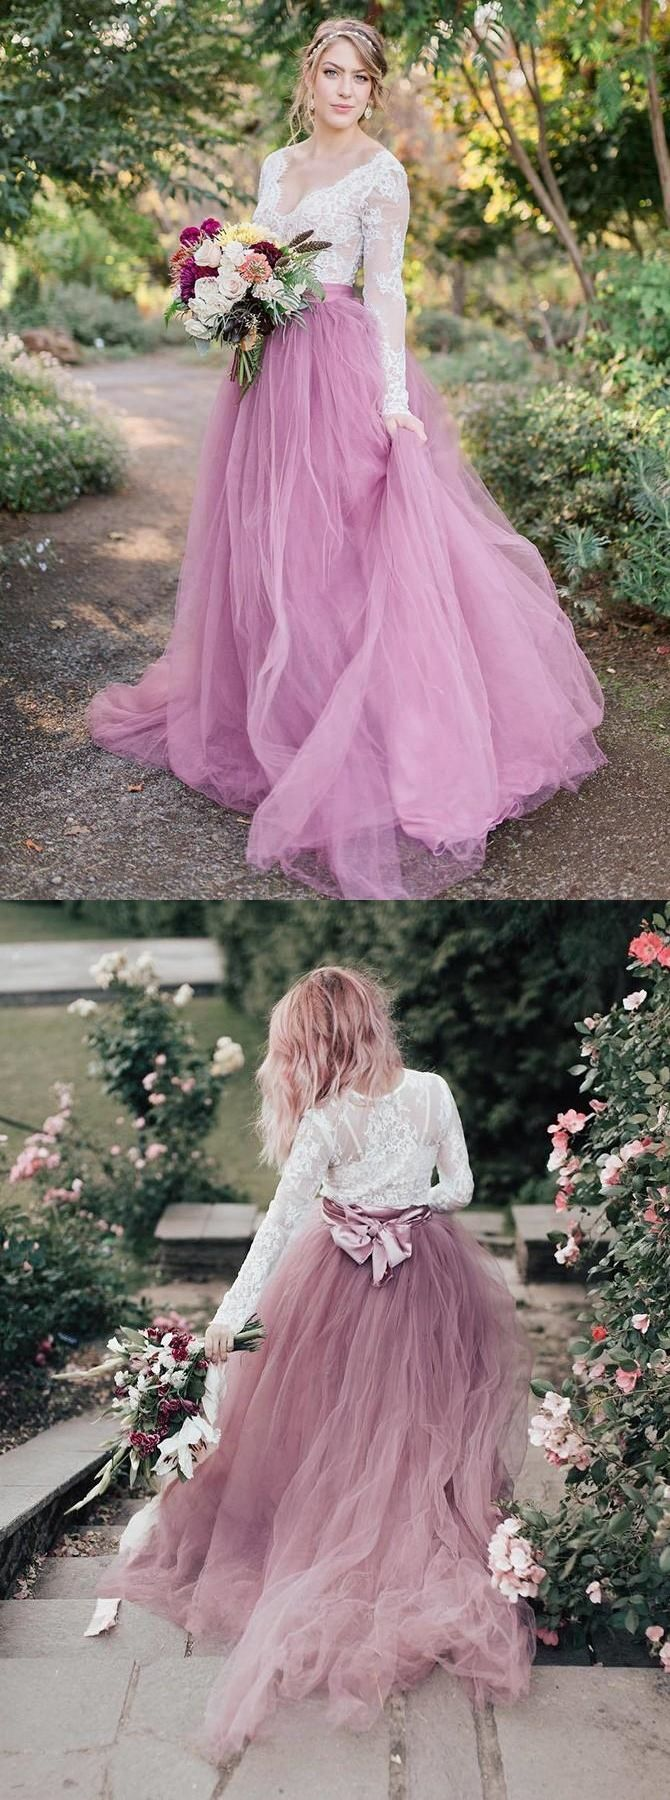 Lace Long Sleeves Wedding Dress Pink Tulle Skirt Bohemian Wedding Dresses YSG6907